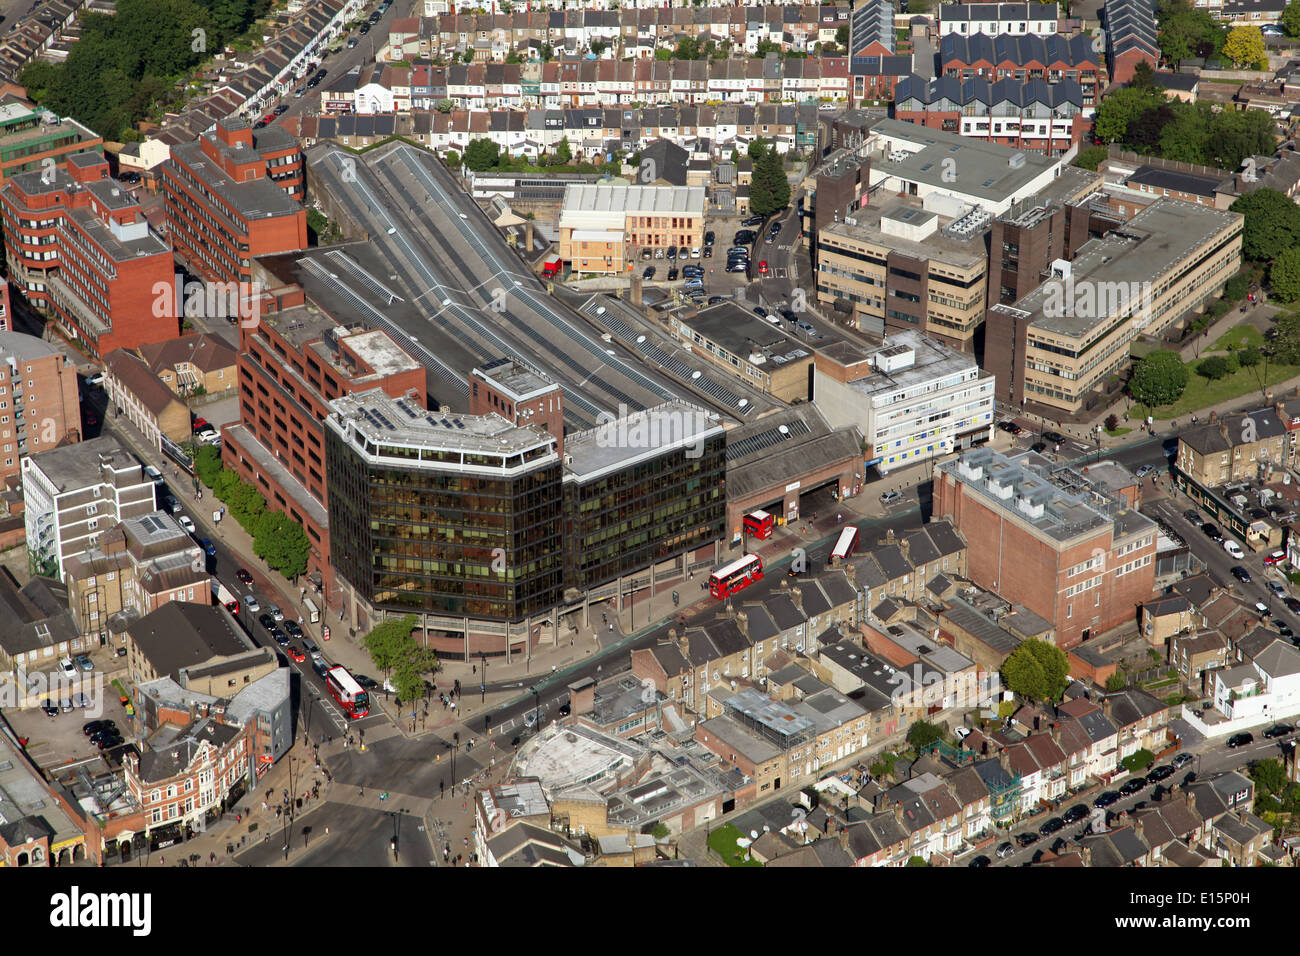 aerial view of Wood Lane Bus Garage in North London, where London buses live - Stock Image